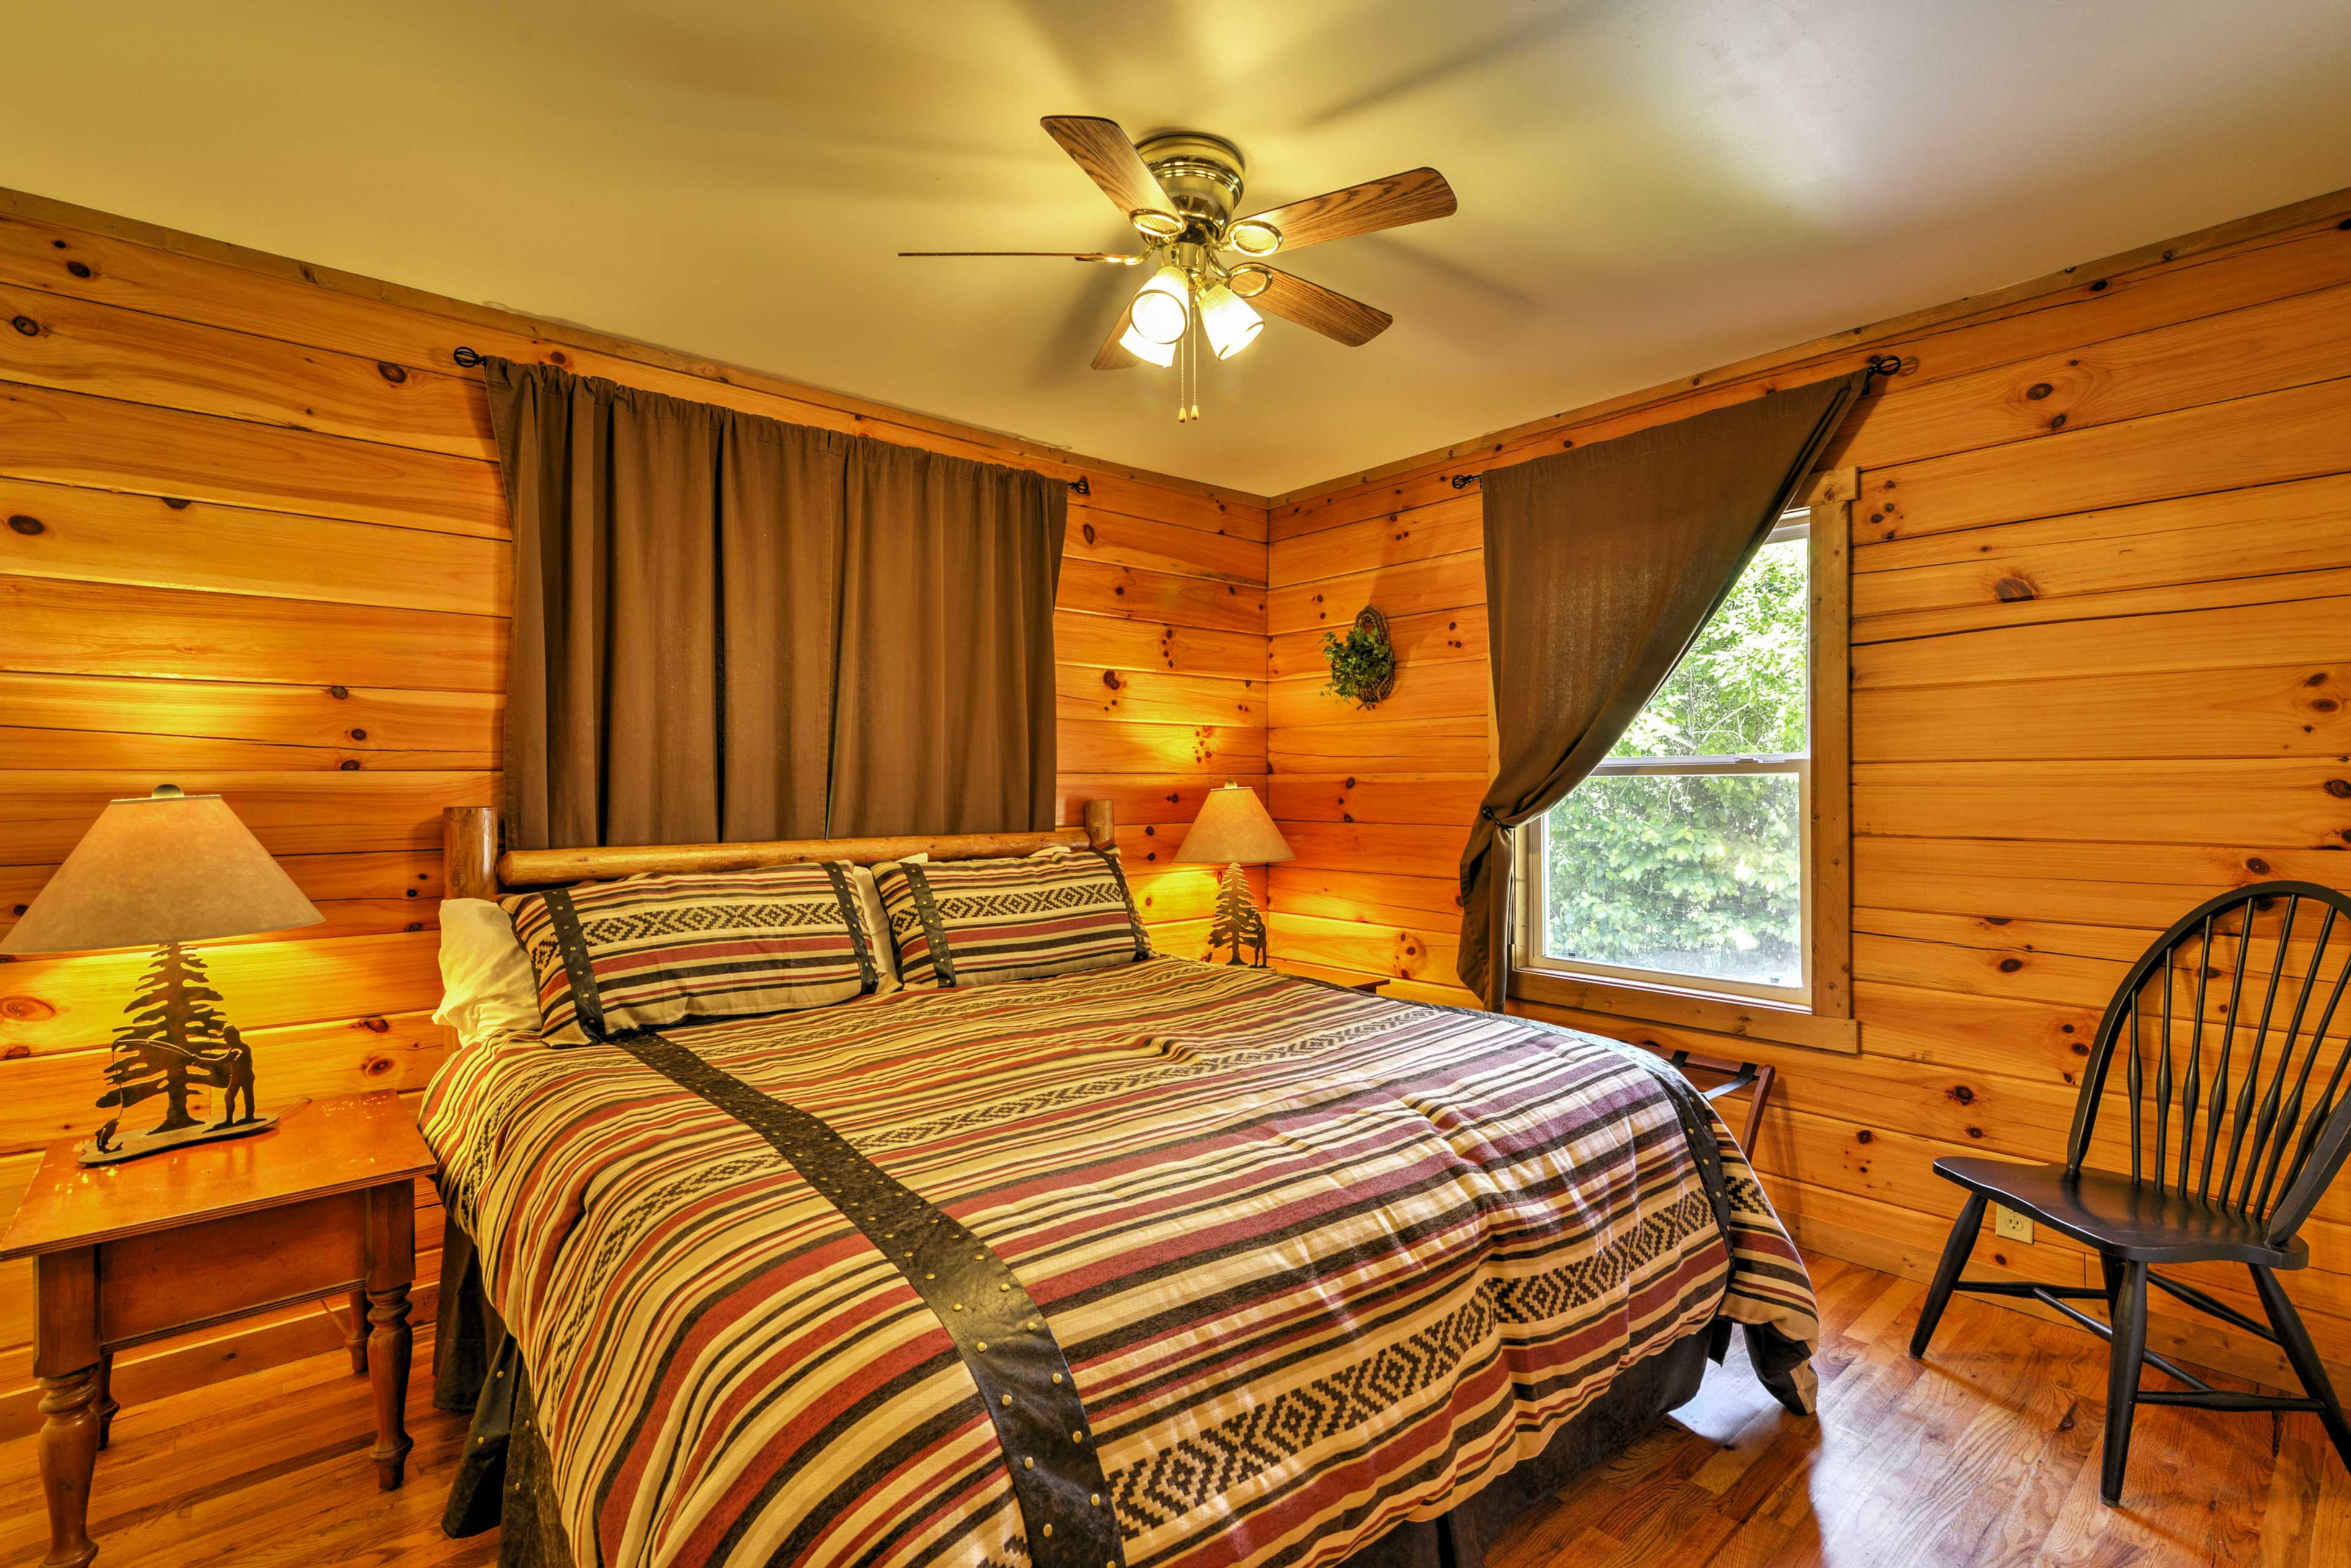 The master bedroom offers a king-sized bed.